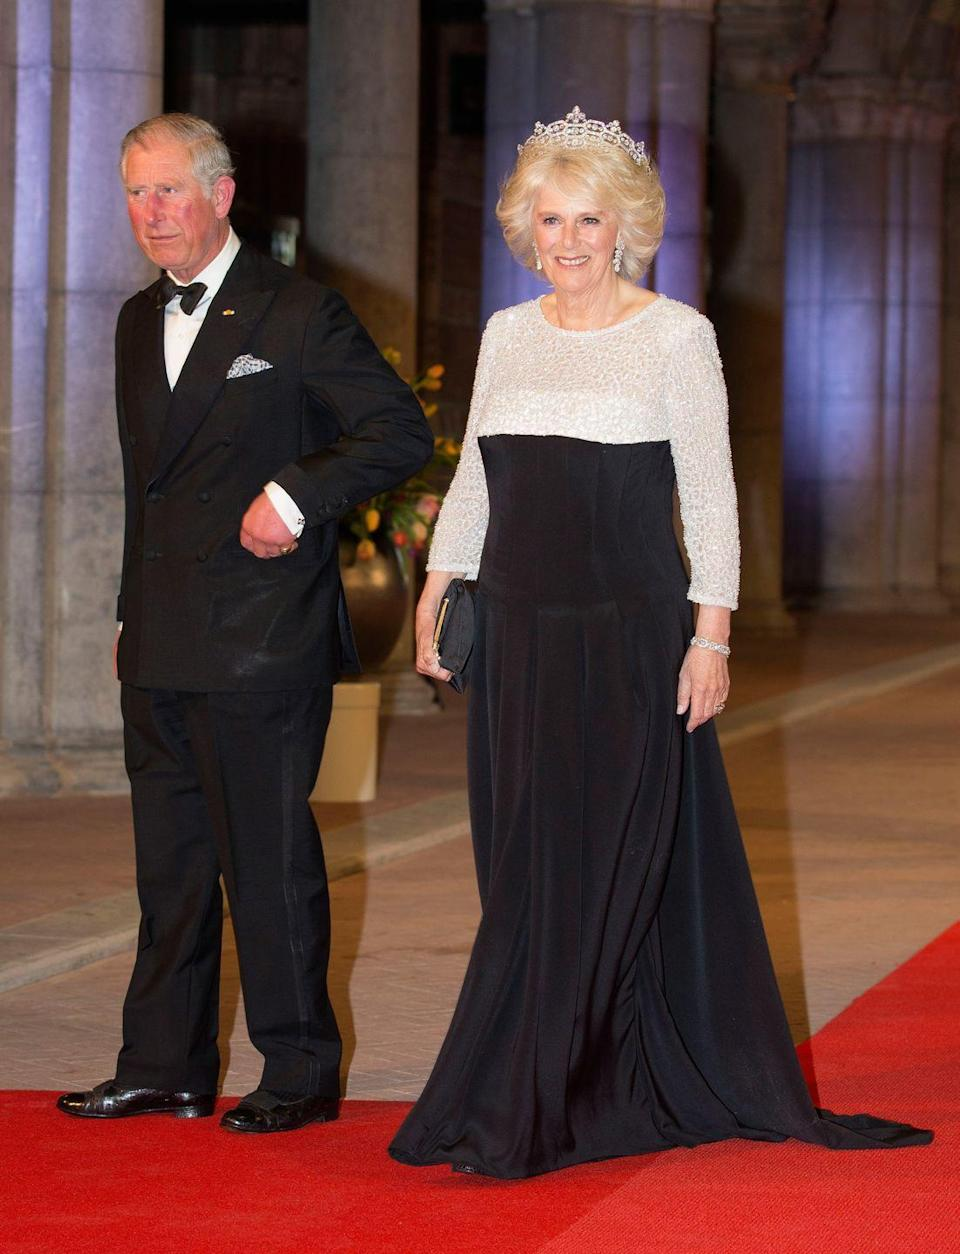 <p>Camilla wowed in a black and white dress with sequined detailing on the top, which she wore to a dinner hosted by Queen Beatrix of the Netherlands in Amsterdam. The Duchess also wore a stunning tiara to finish off her ensemble. </p>